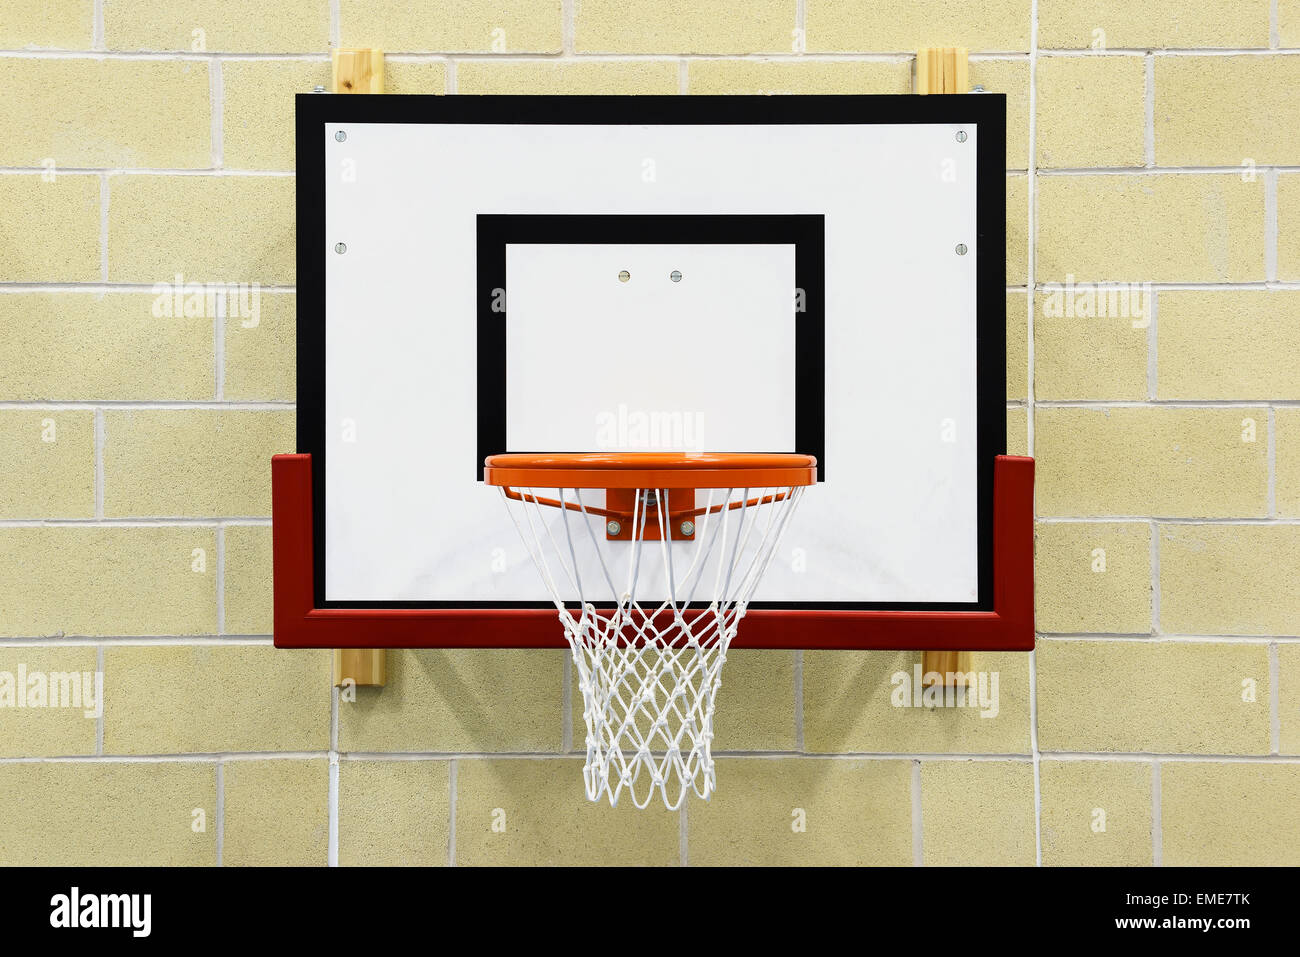 Close up of an indoor wall mounted basketball hoop - Stock Image